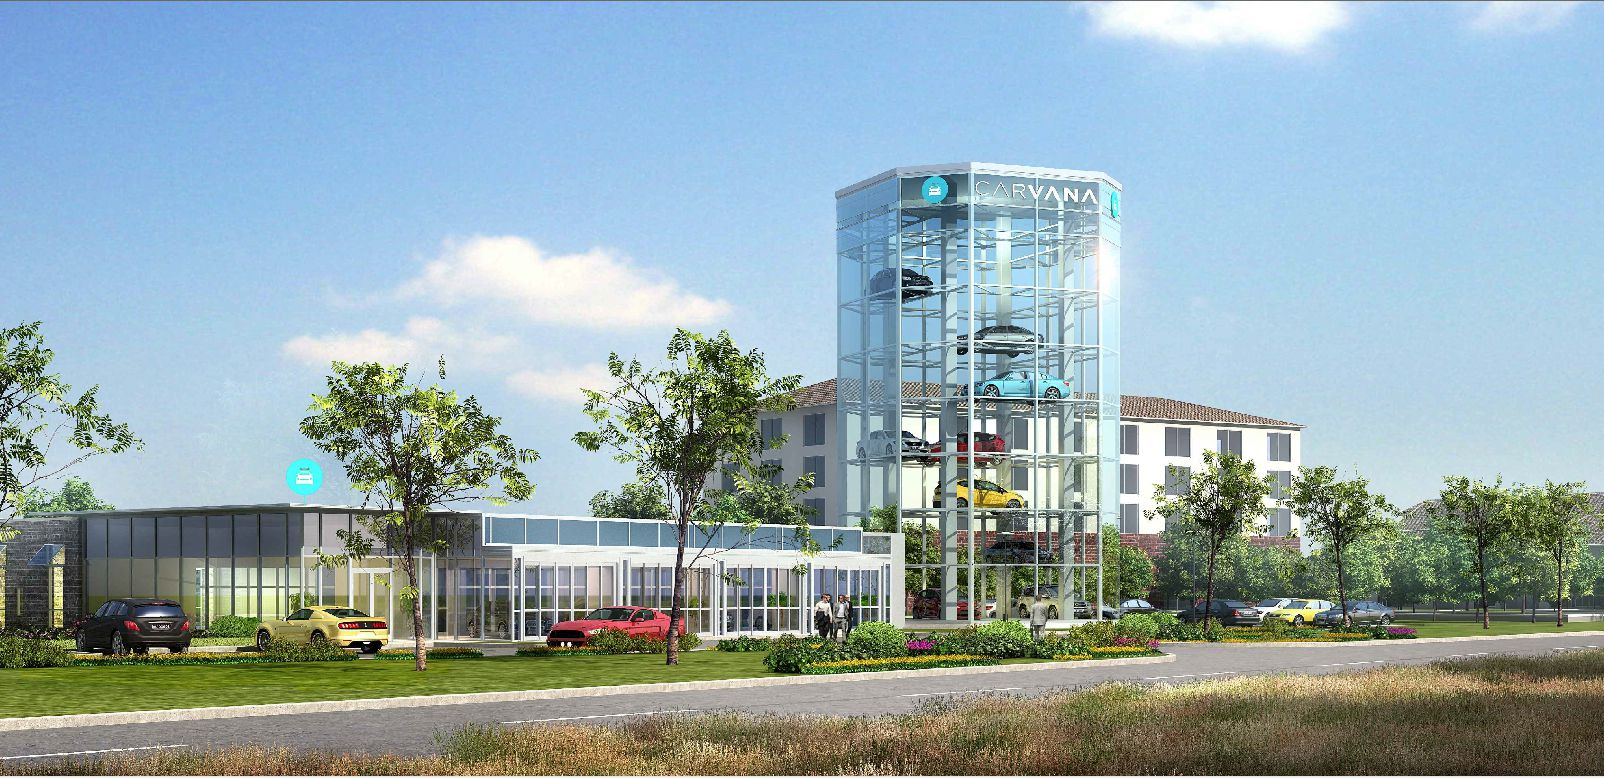 Arizona-based Carvana is building a seven-story auto sales tower on State Highway 121 just north of Toyota's new headquarters.